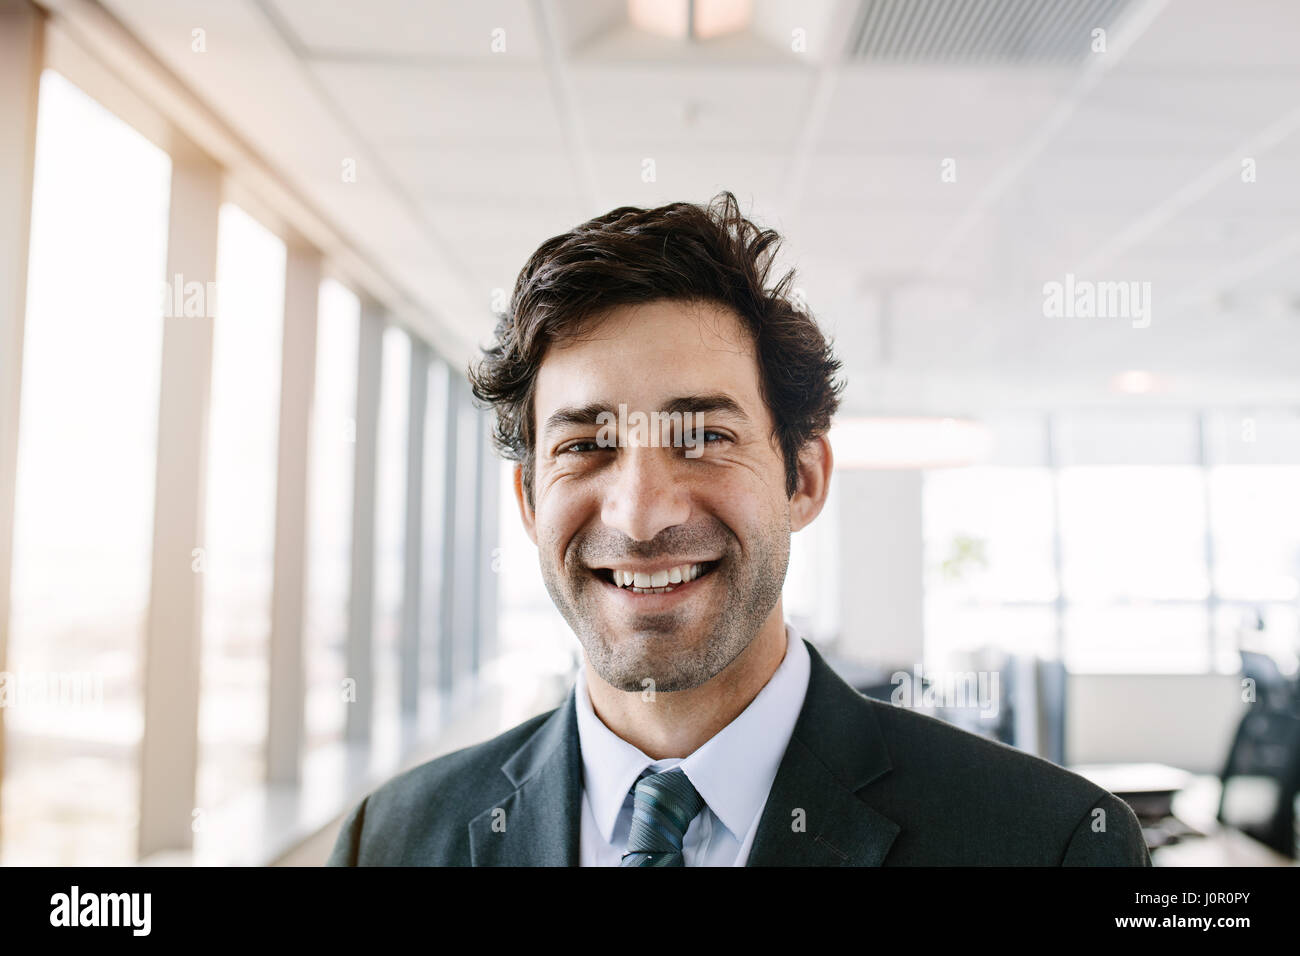 Portrait of successful young businessman standing in office. Manager in suit looking at camera with a smile. Stock Photo